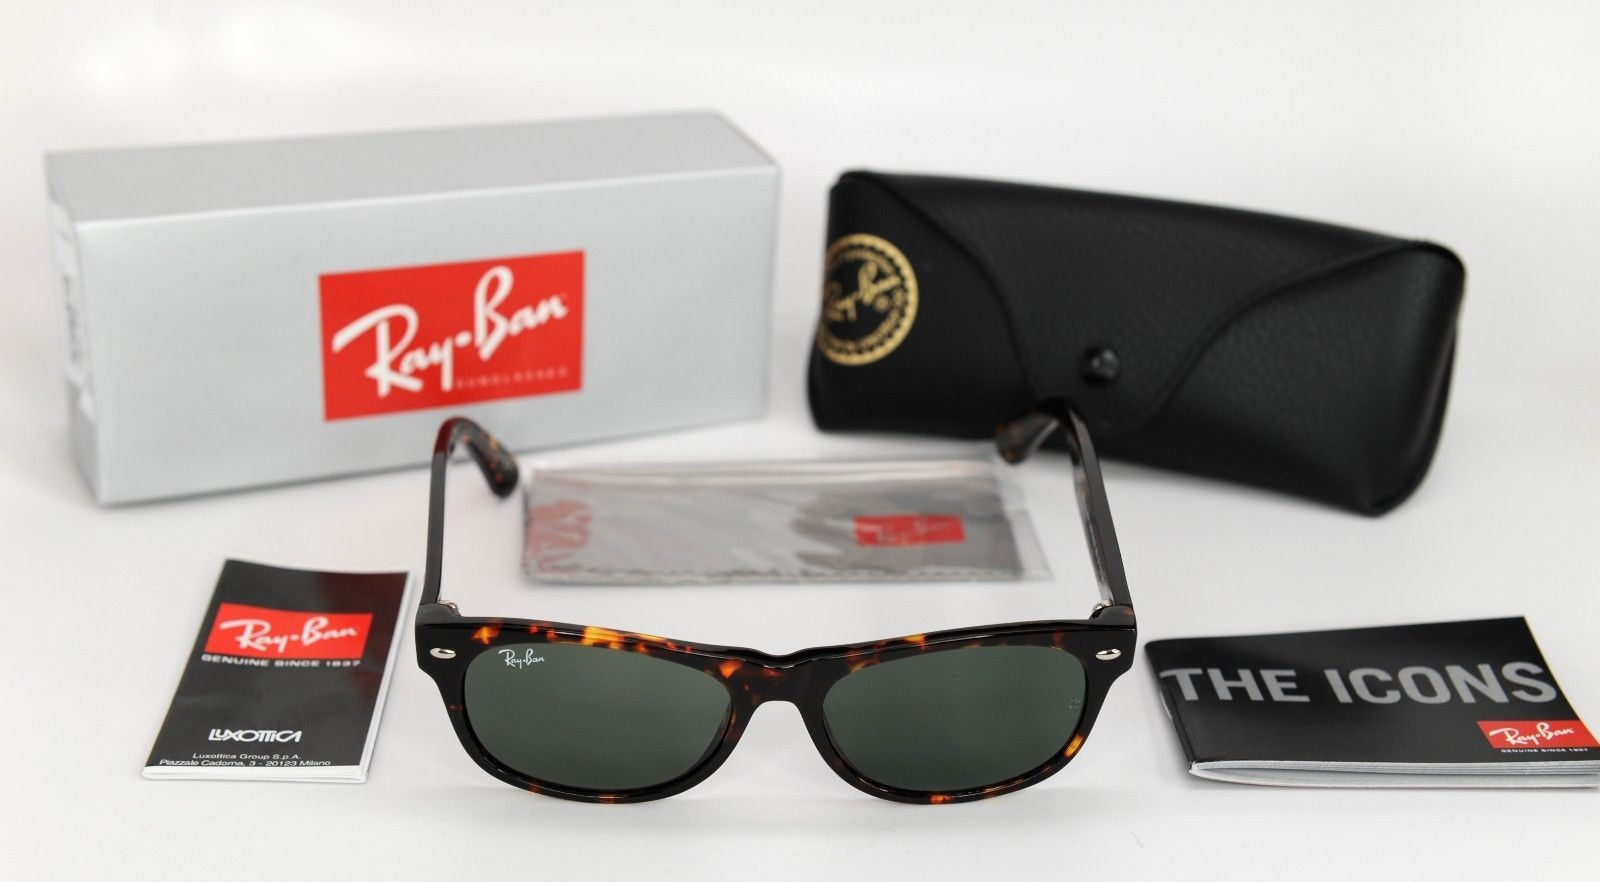 d11fb94542 Ray-Ban New Wayfarer RB2132 902 52 Tortoise and 50 similar items. 57